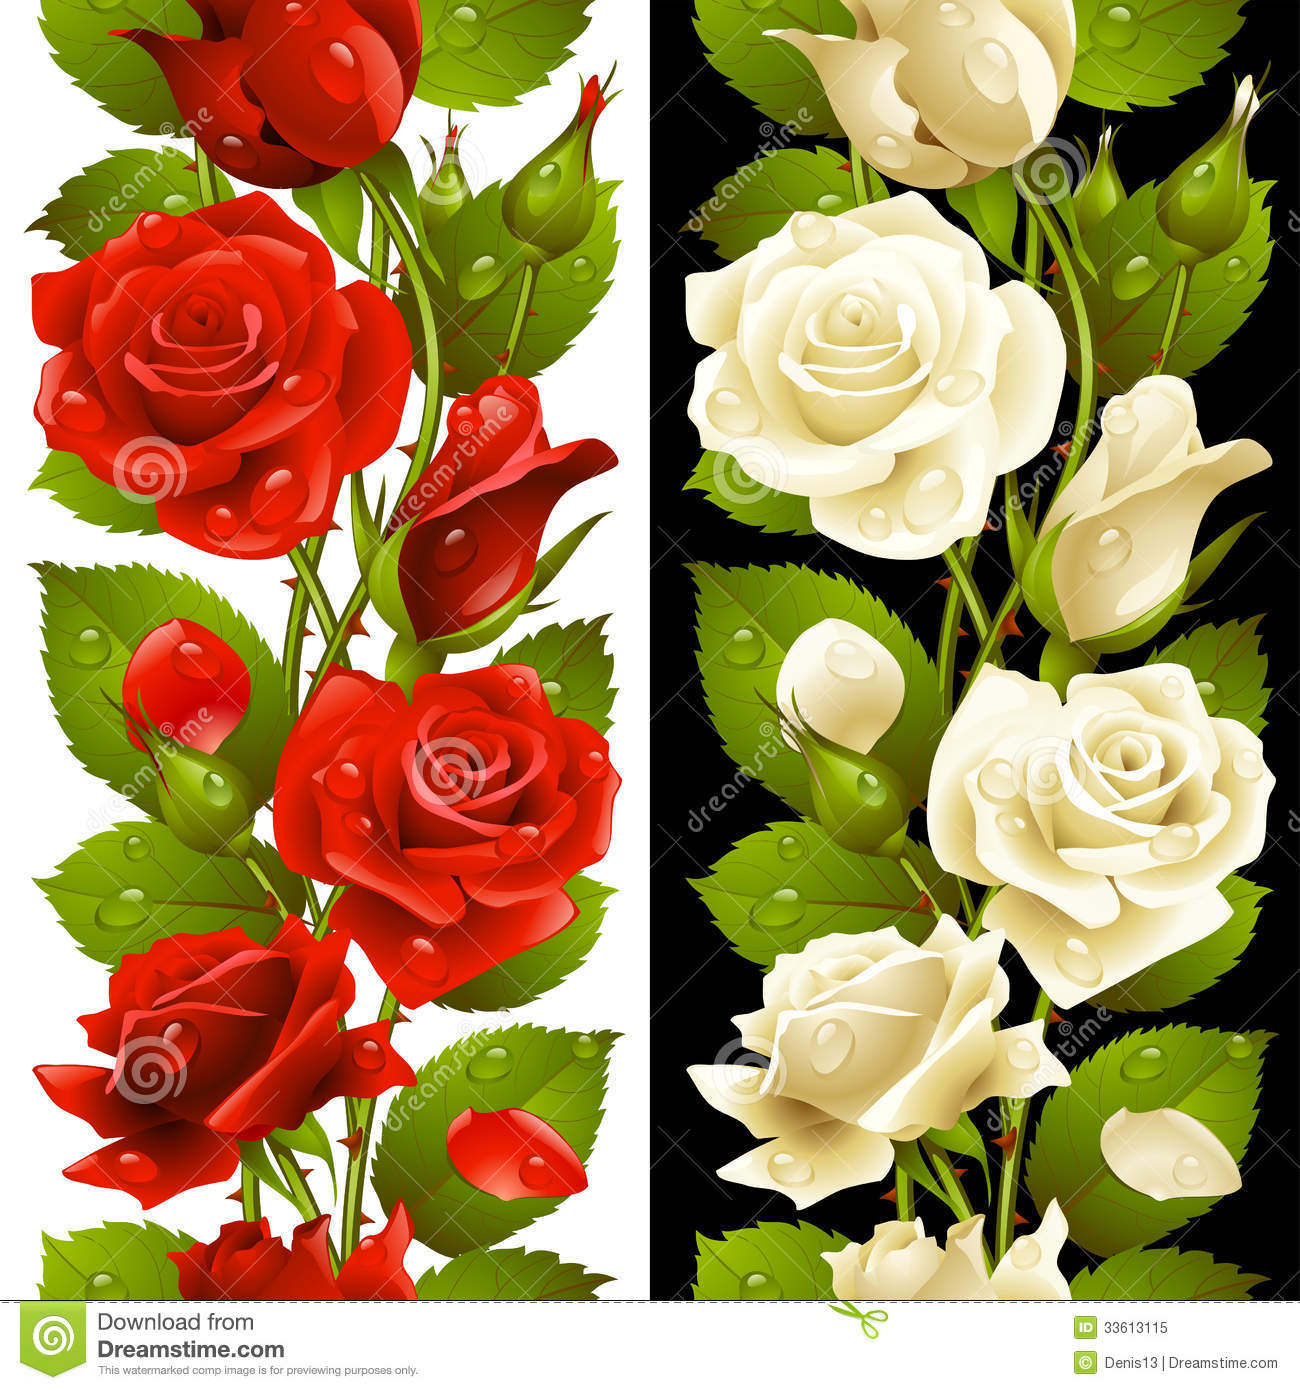 Vector red and white rose vertical seamless patter